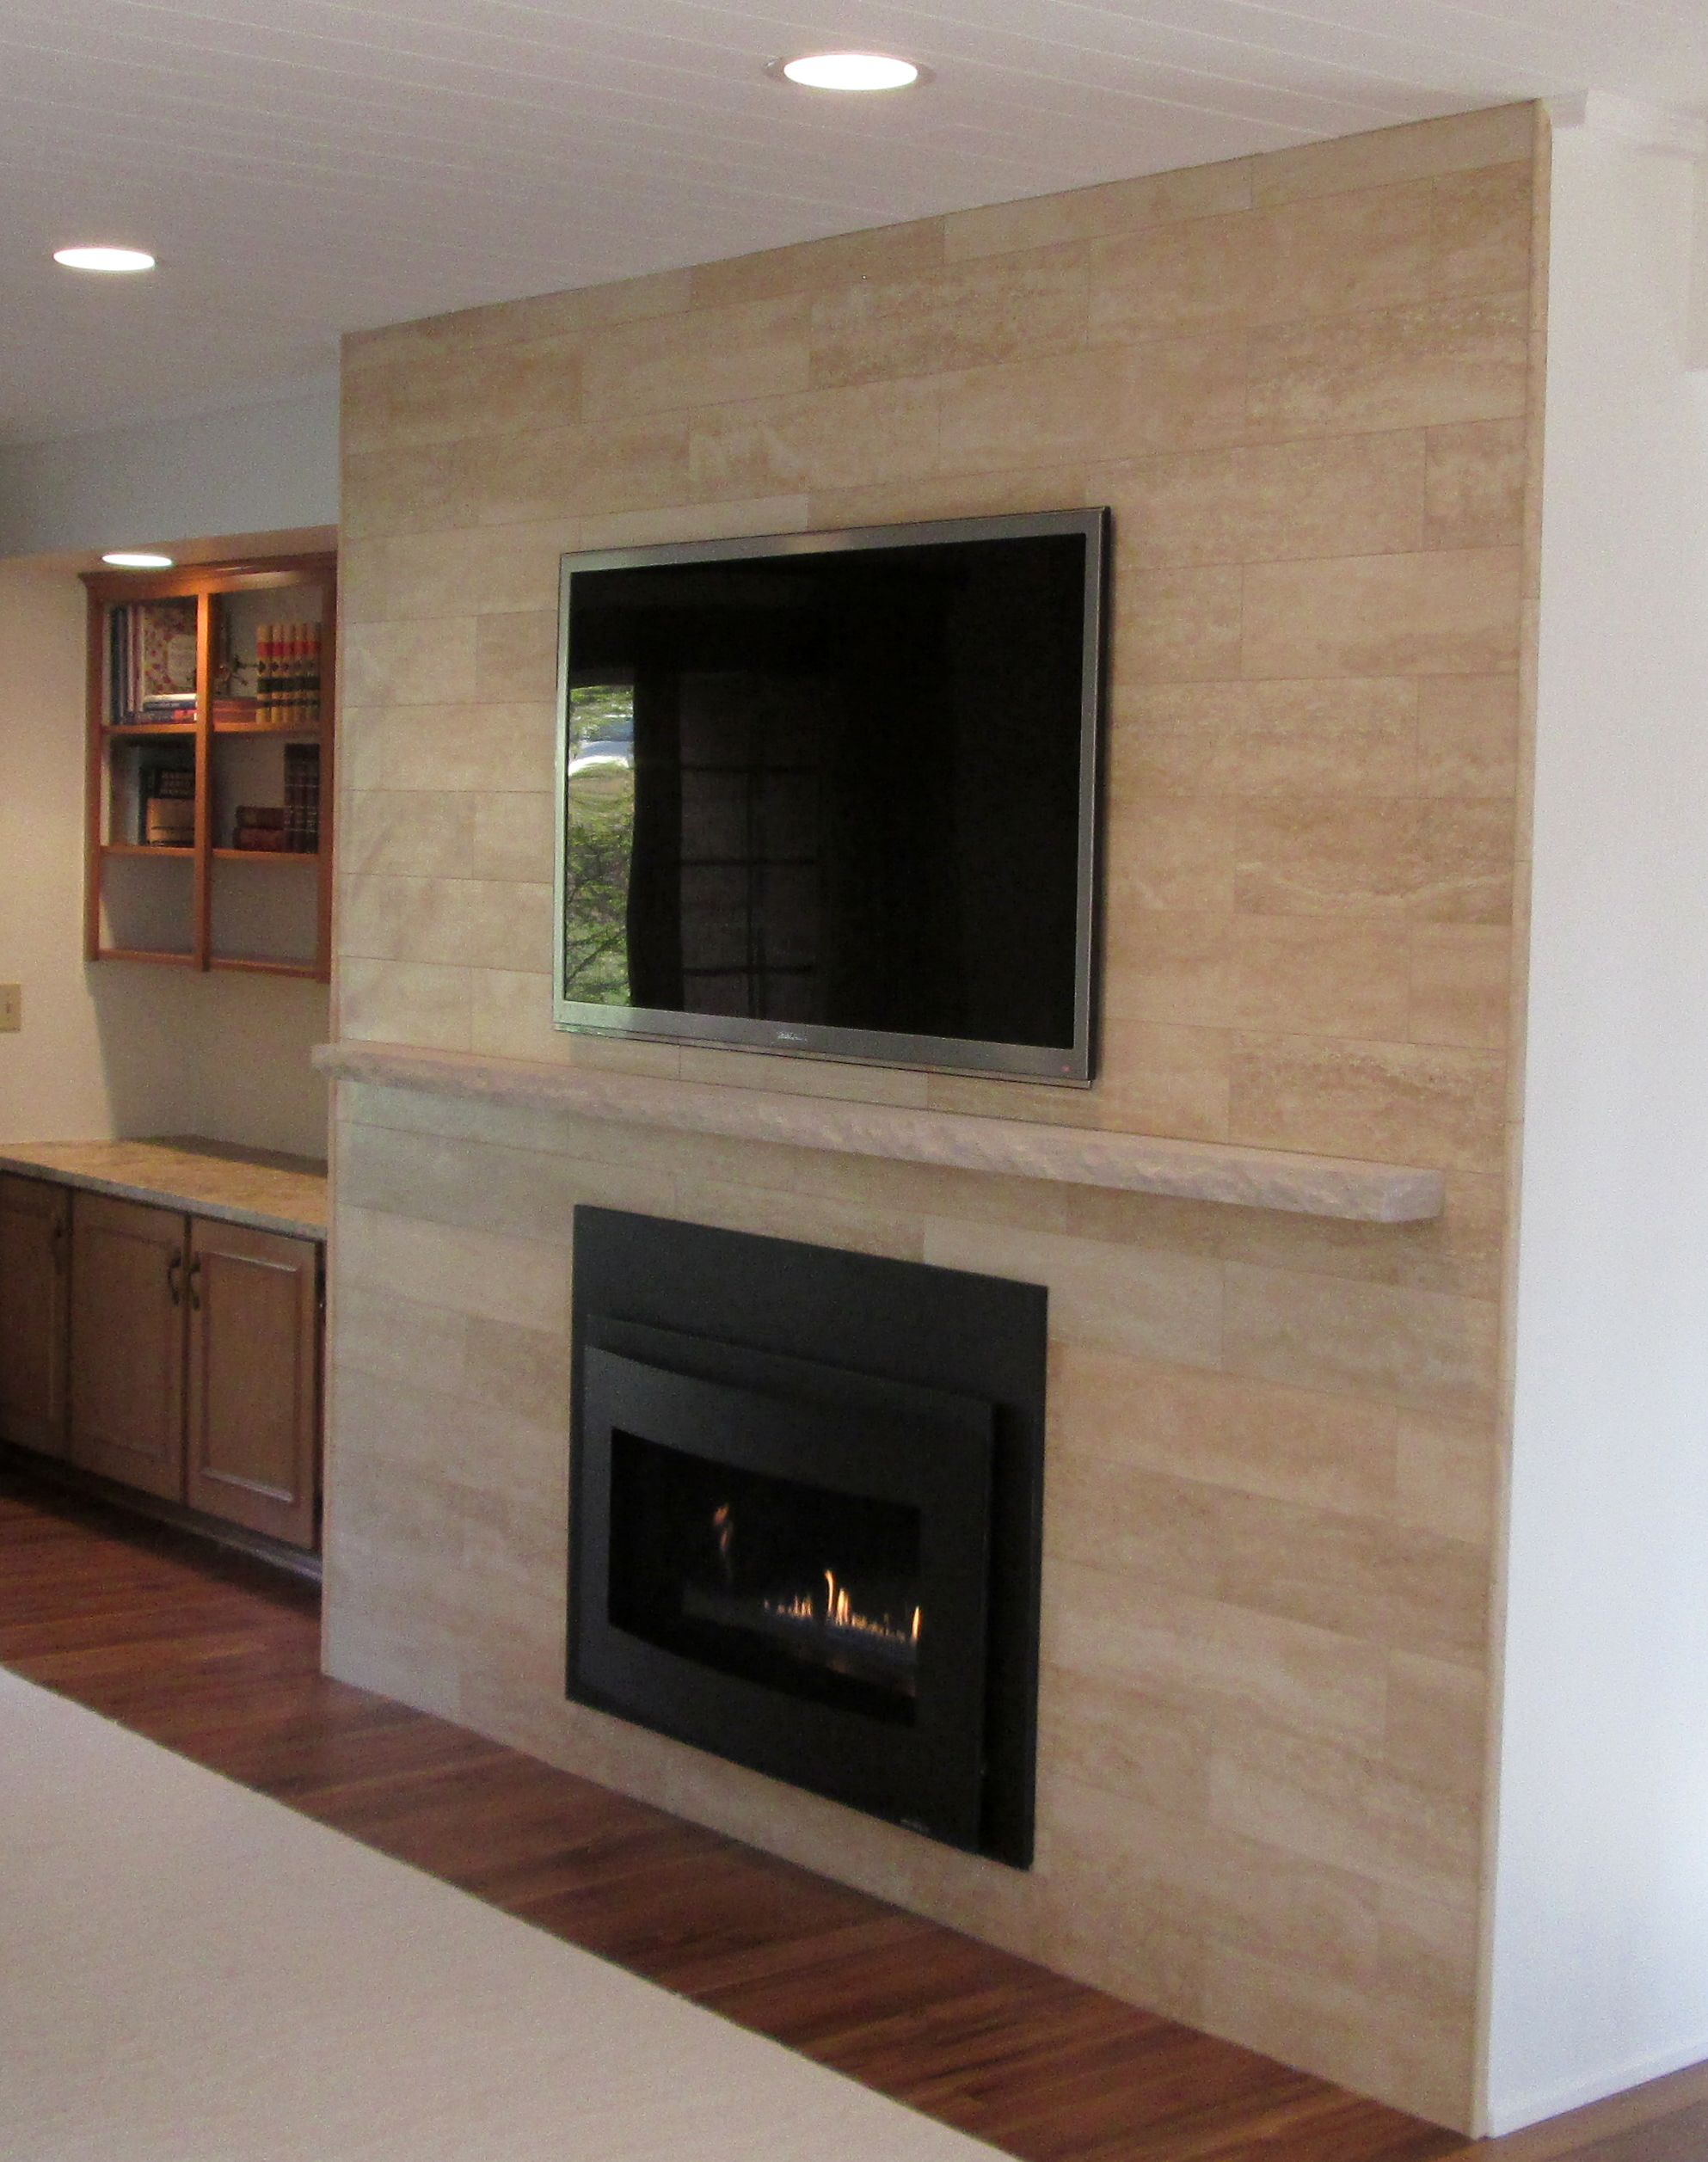 sant agostino 6 u201d x 24 u201d plank travertine tile in beige on fireplace